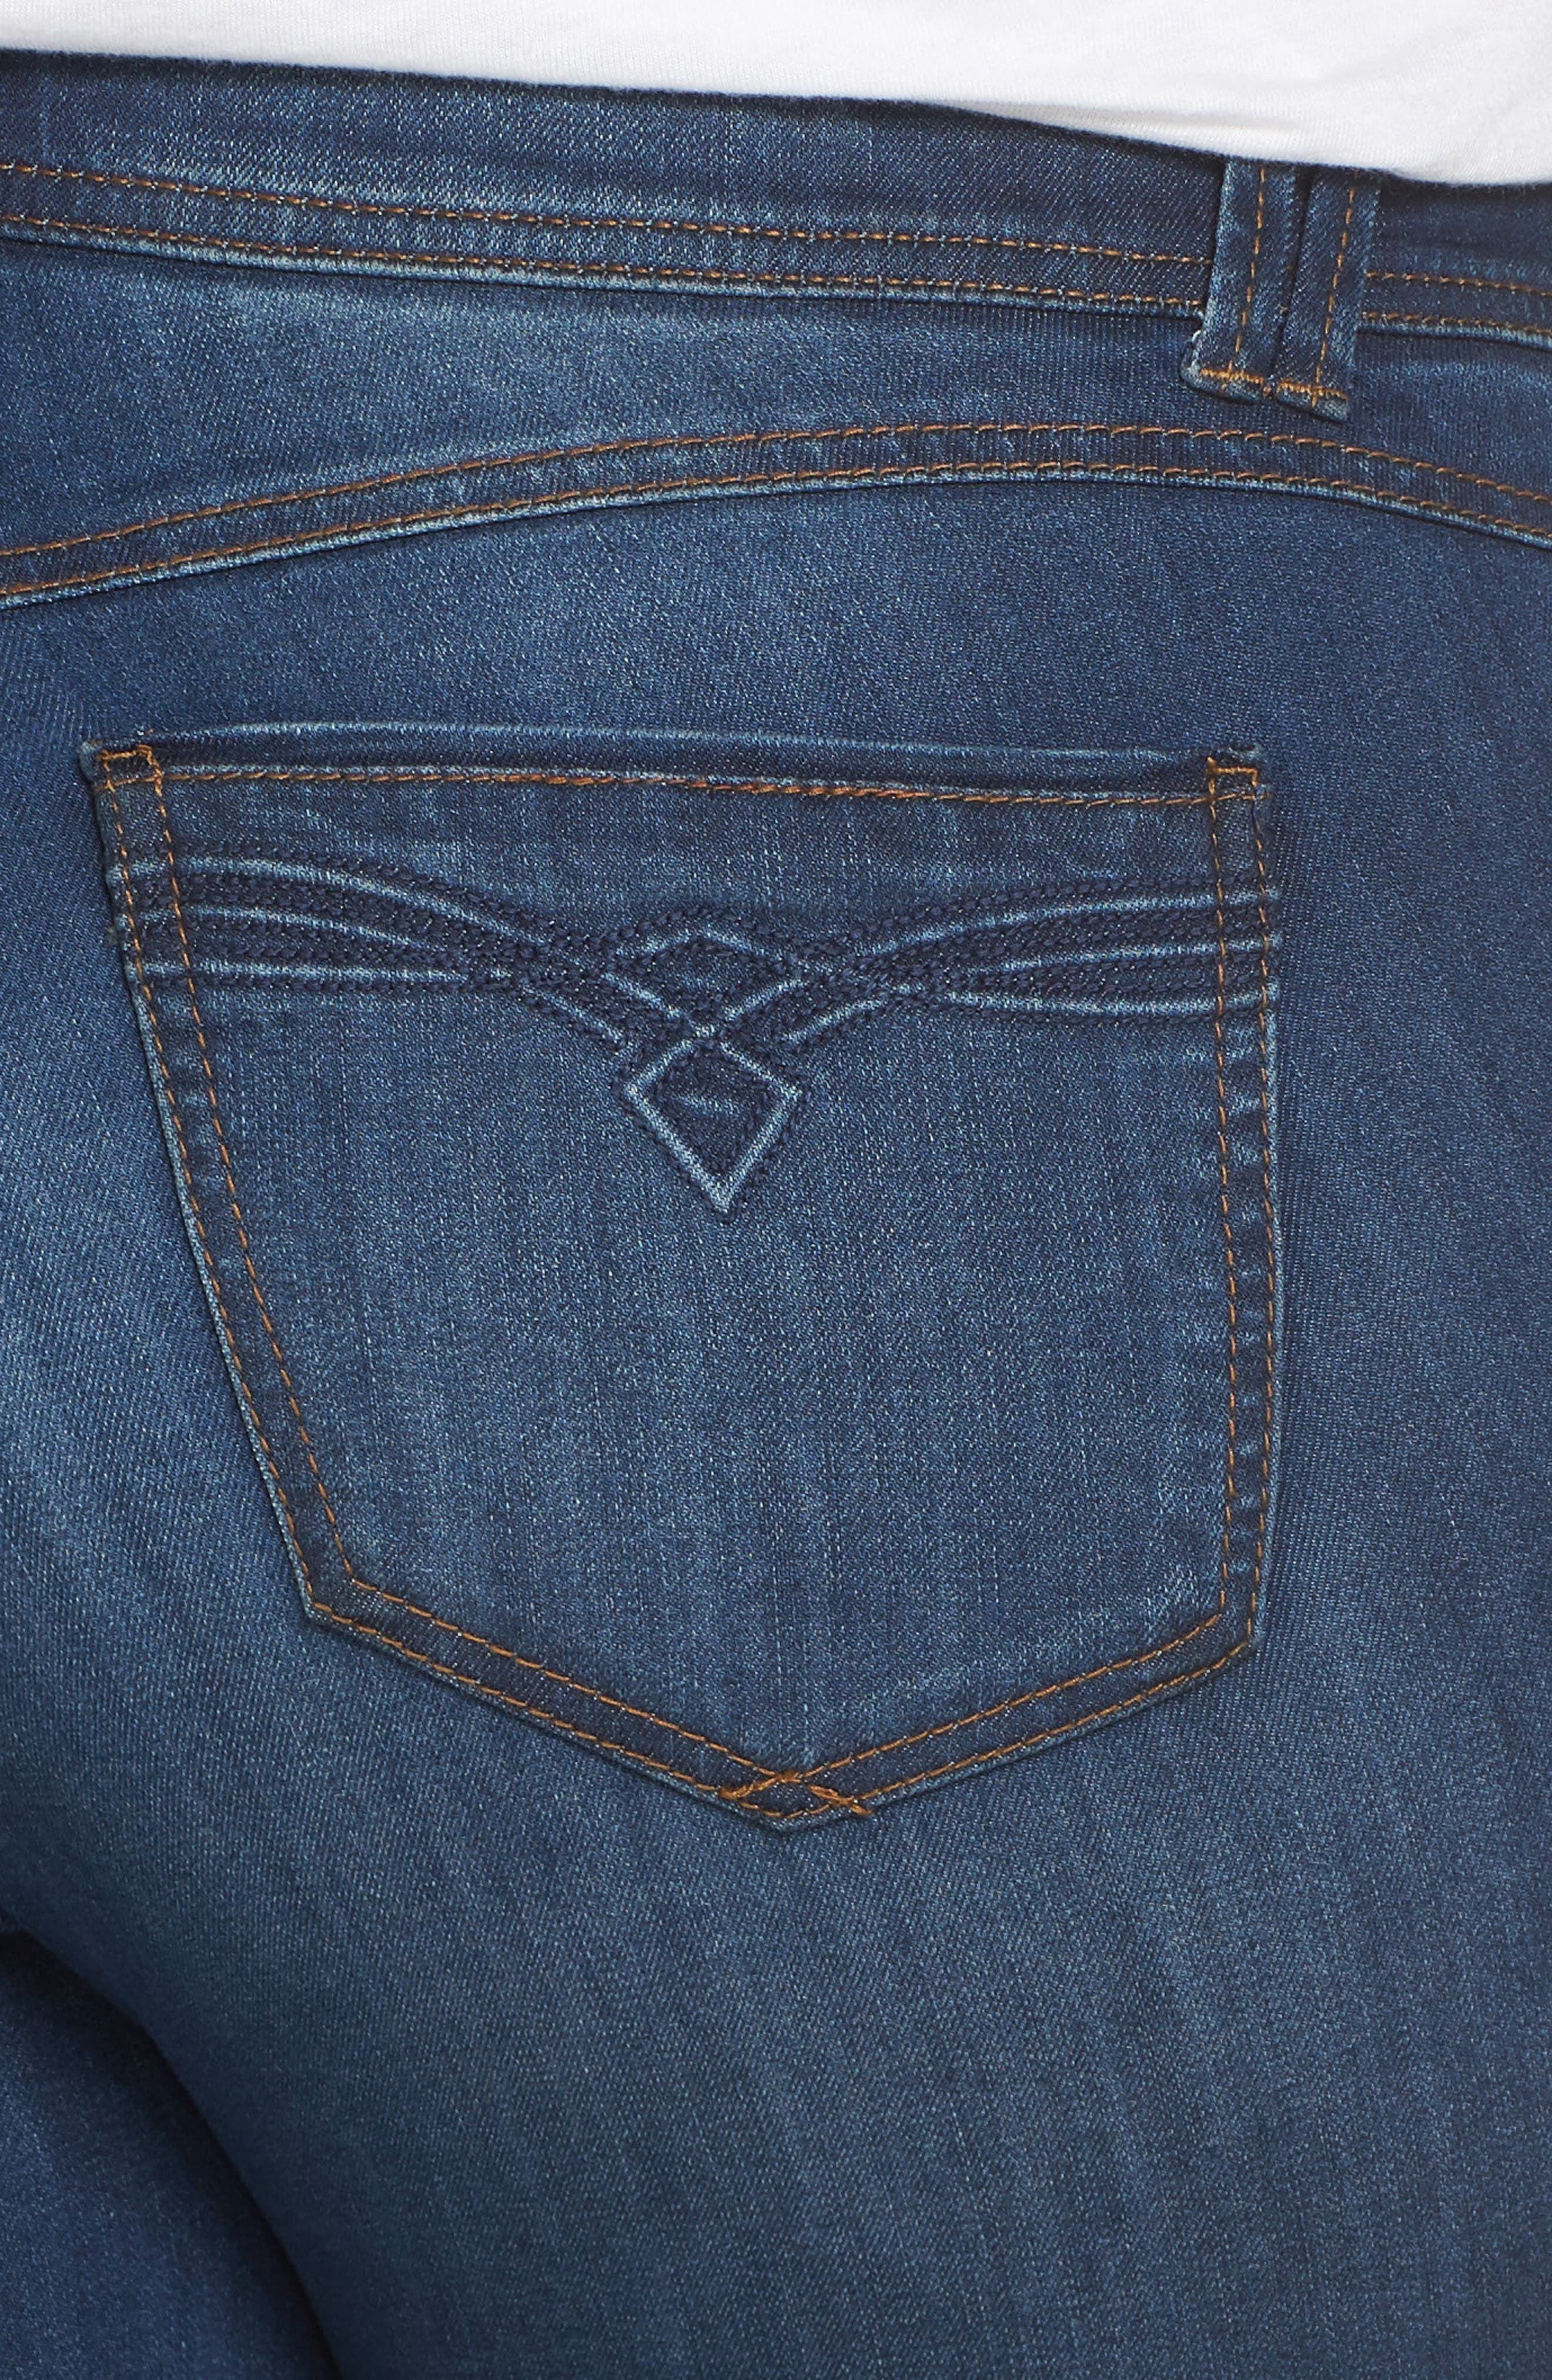 Ab-Solution Itty Bitty Bootcut Jeans,                             Alternate thumbnail 4, color,                             BLUE